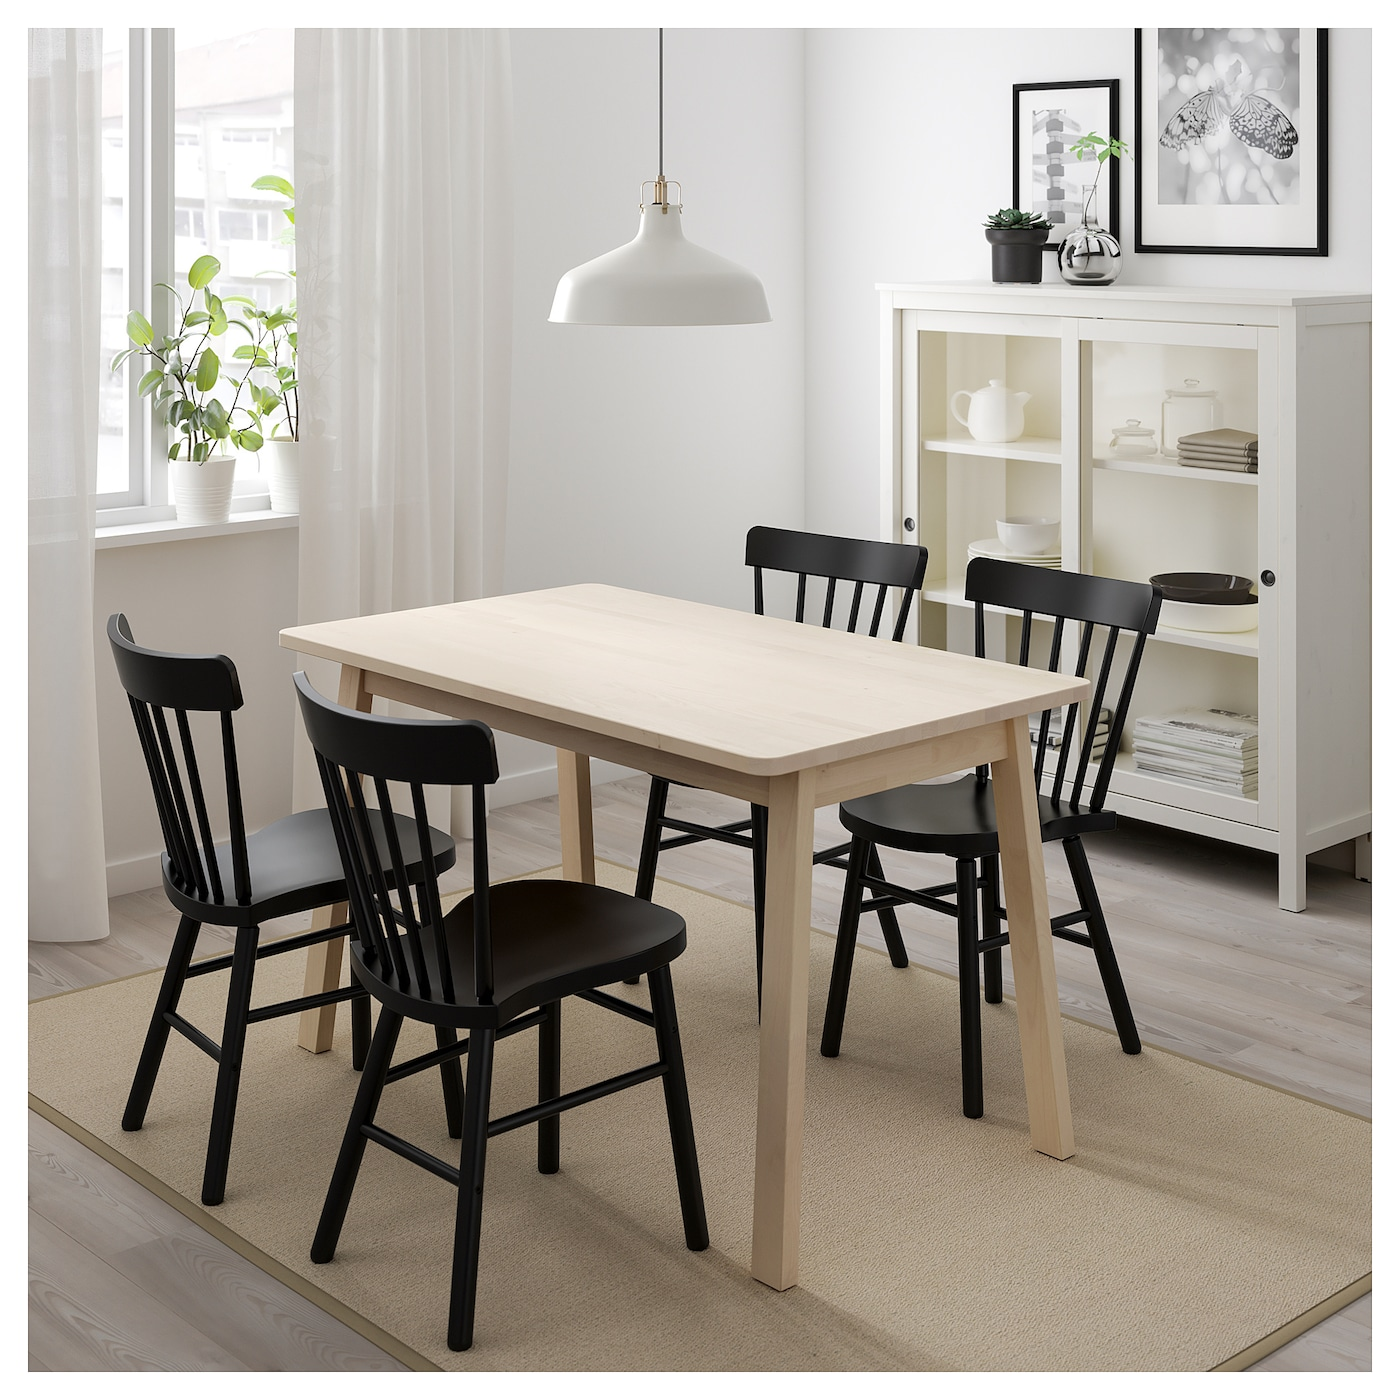 norraryd norr ker table et 4 chaises blanc bouleau noir 125 cm ikea. Black Bedroom Furniture Sets. Home Design Ideas